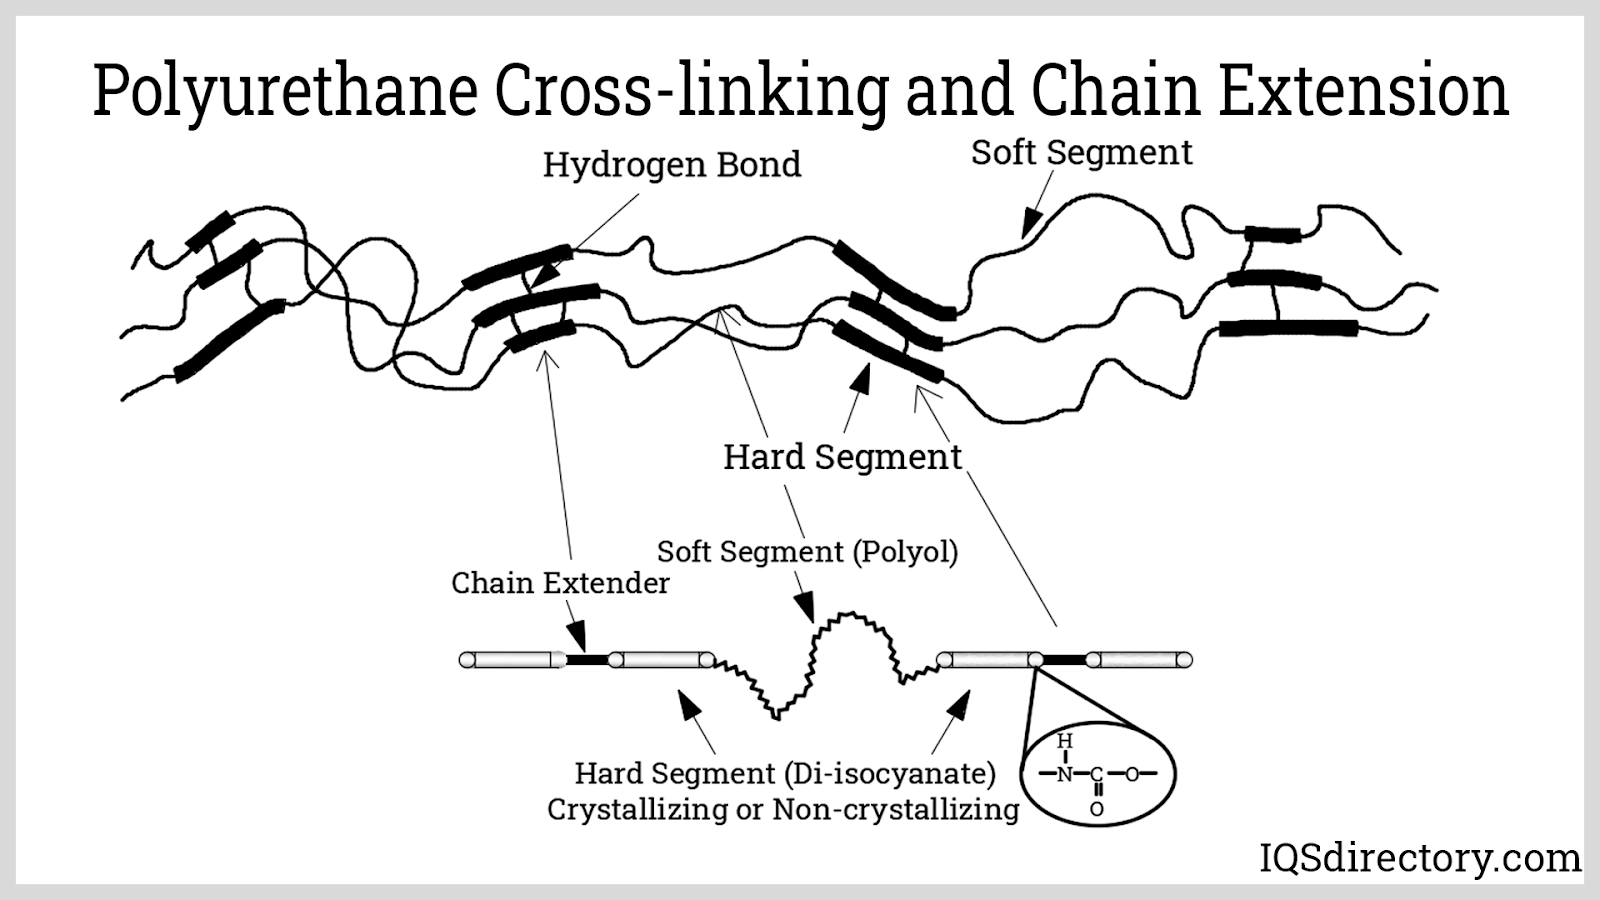 Polyurethane Cross-linking and Chain Extension